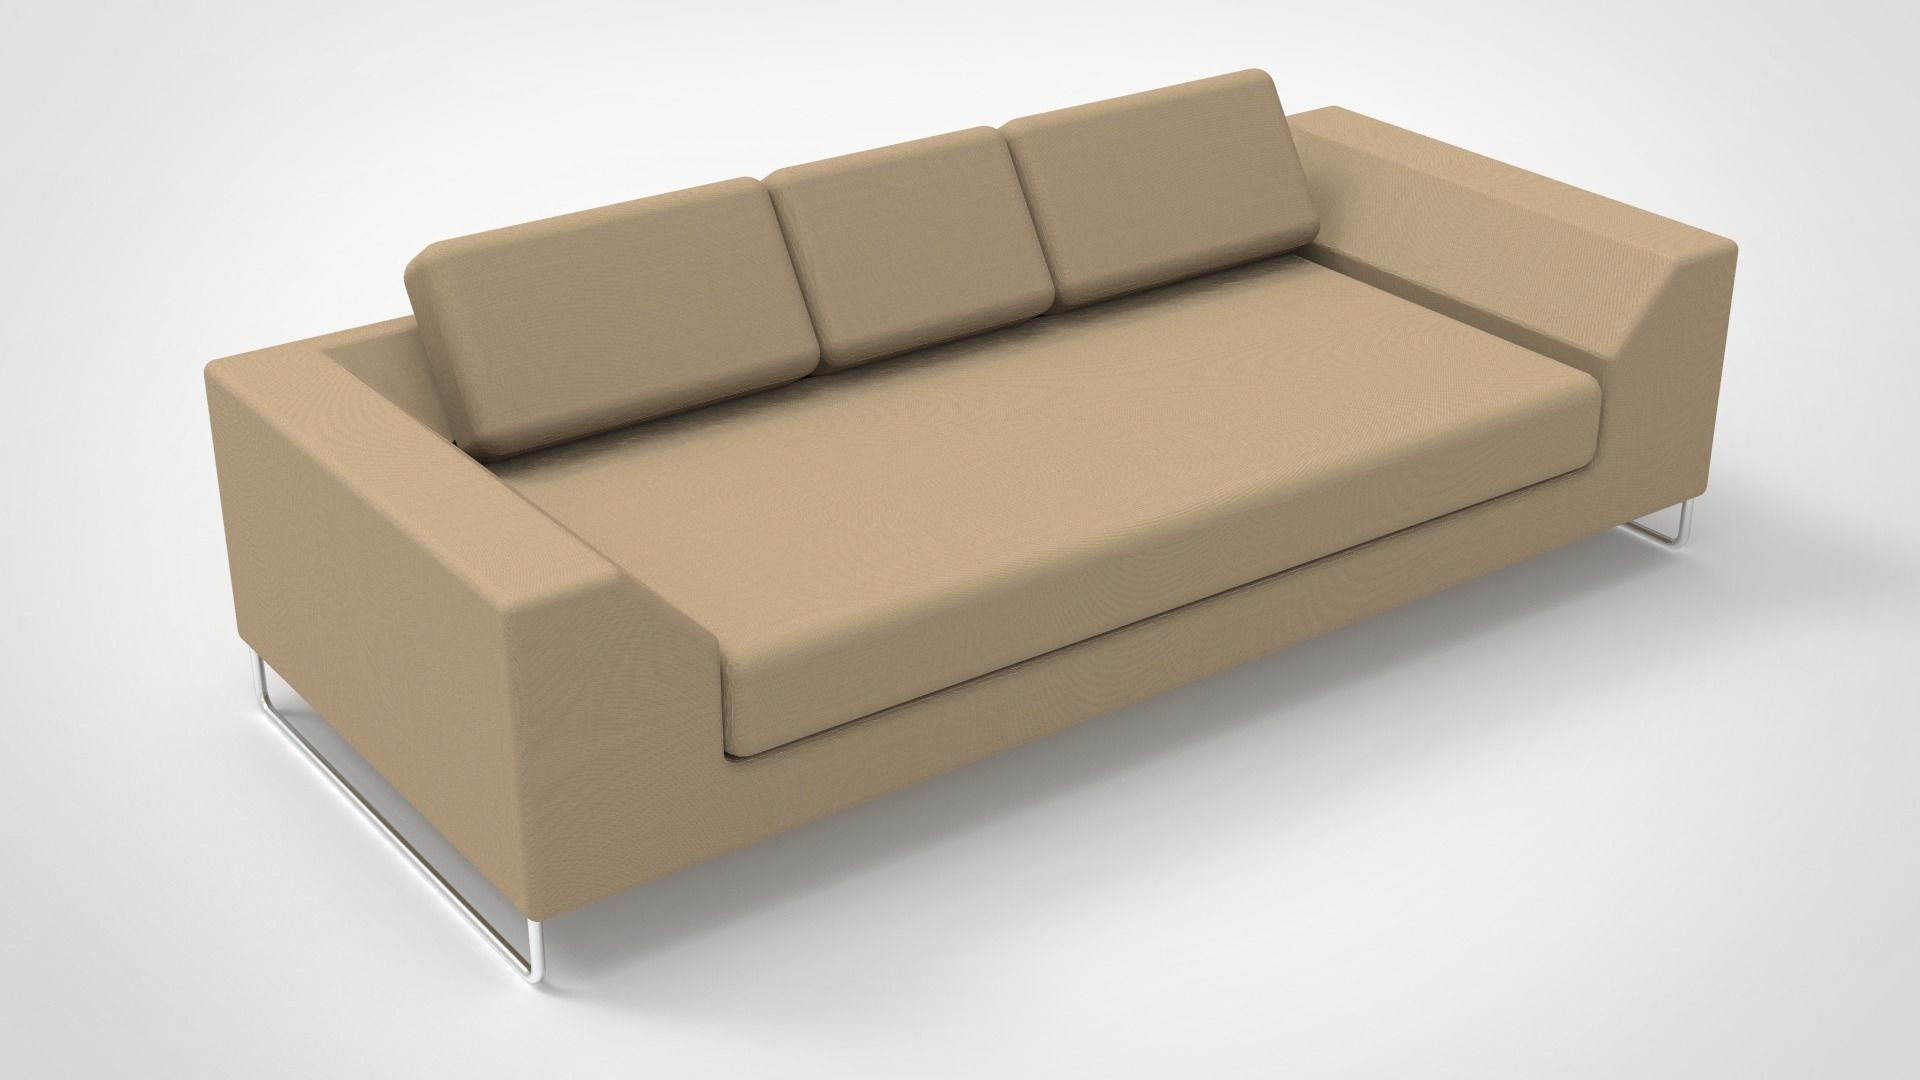 Design Couch Design Sofa With Pipe Legs 3d Model